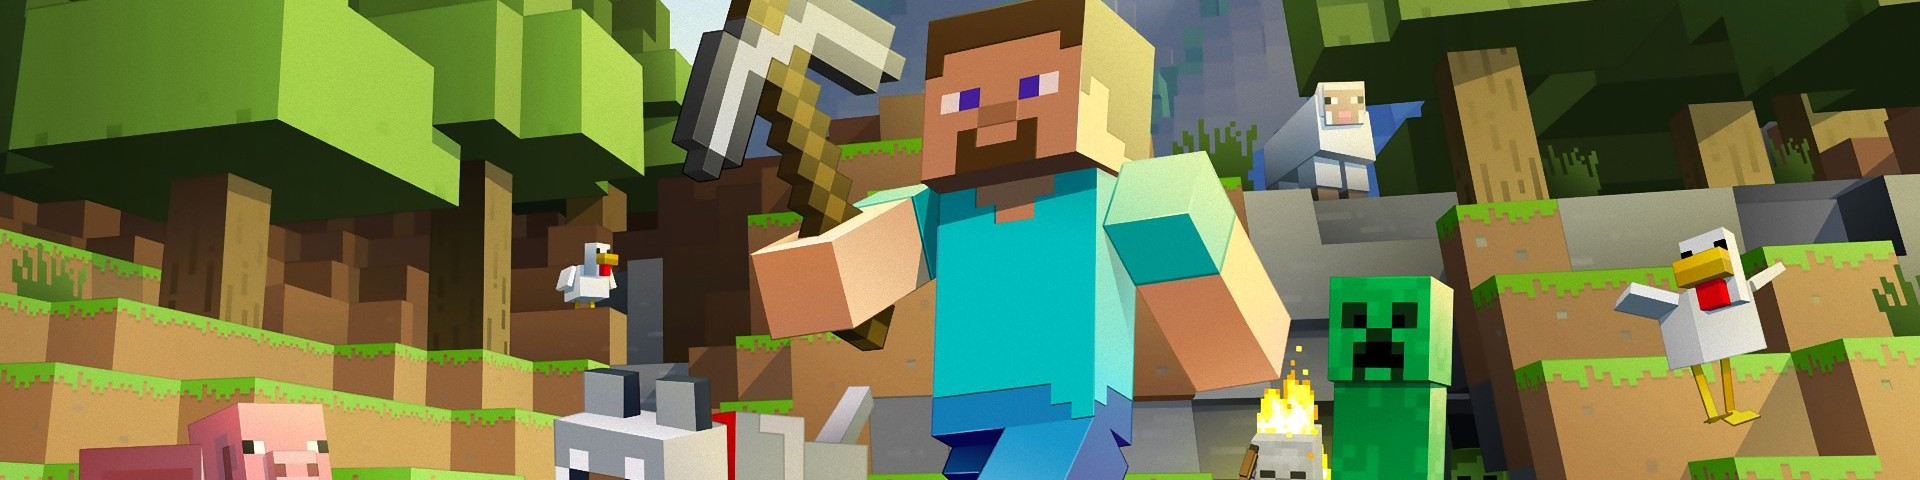 Minecraft ps4 e Xbox One